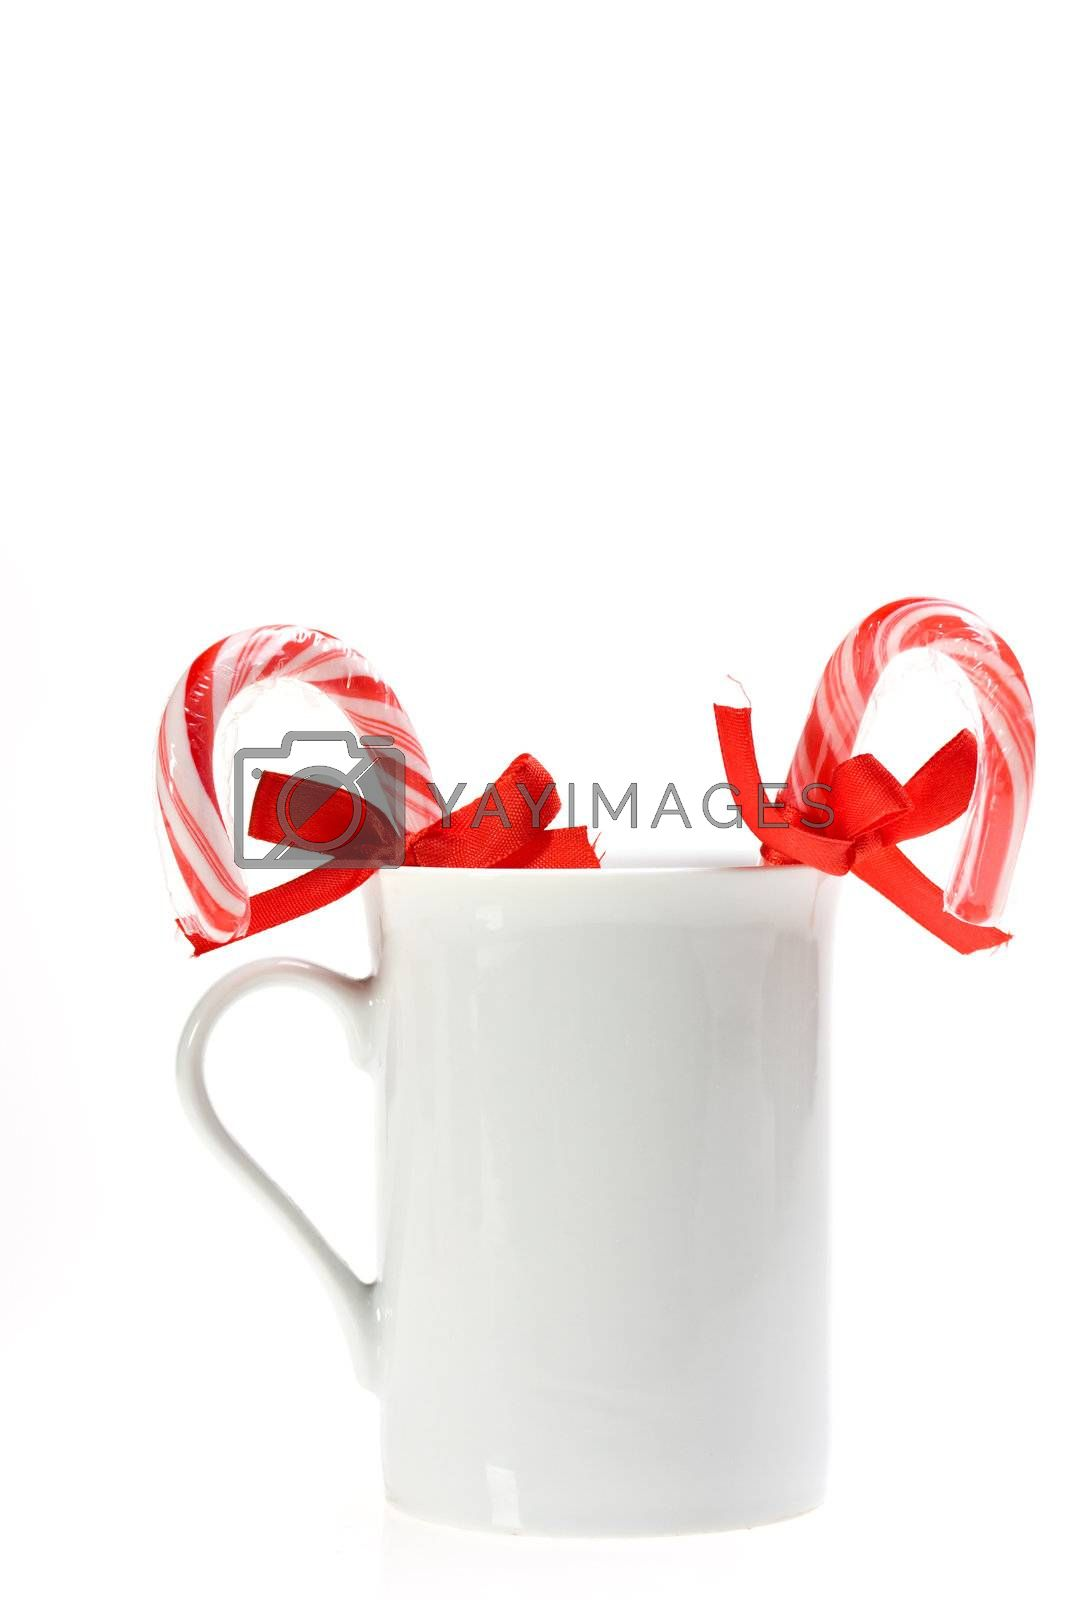 sugar canes in a white cup isolated